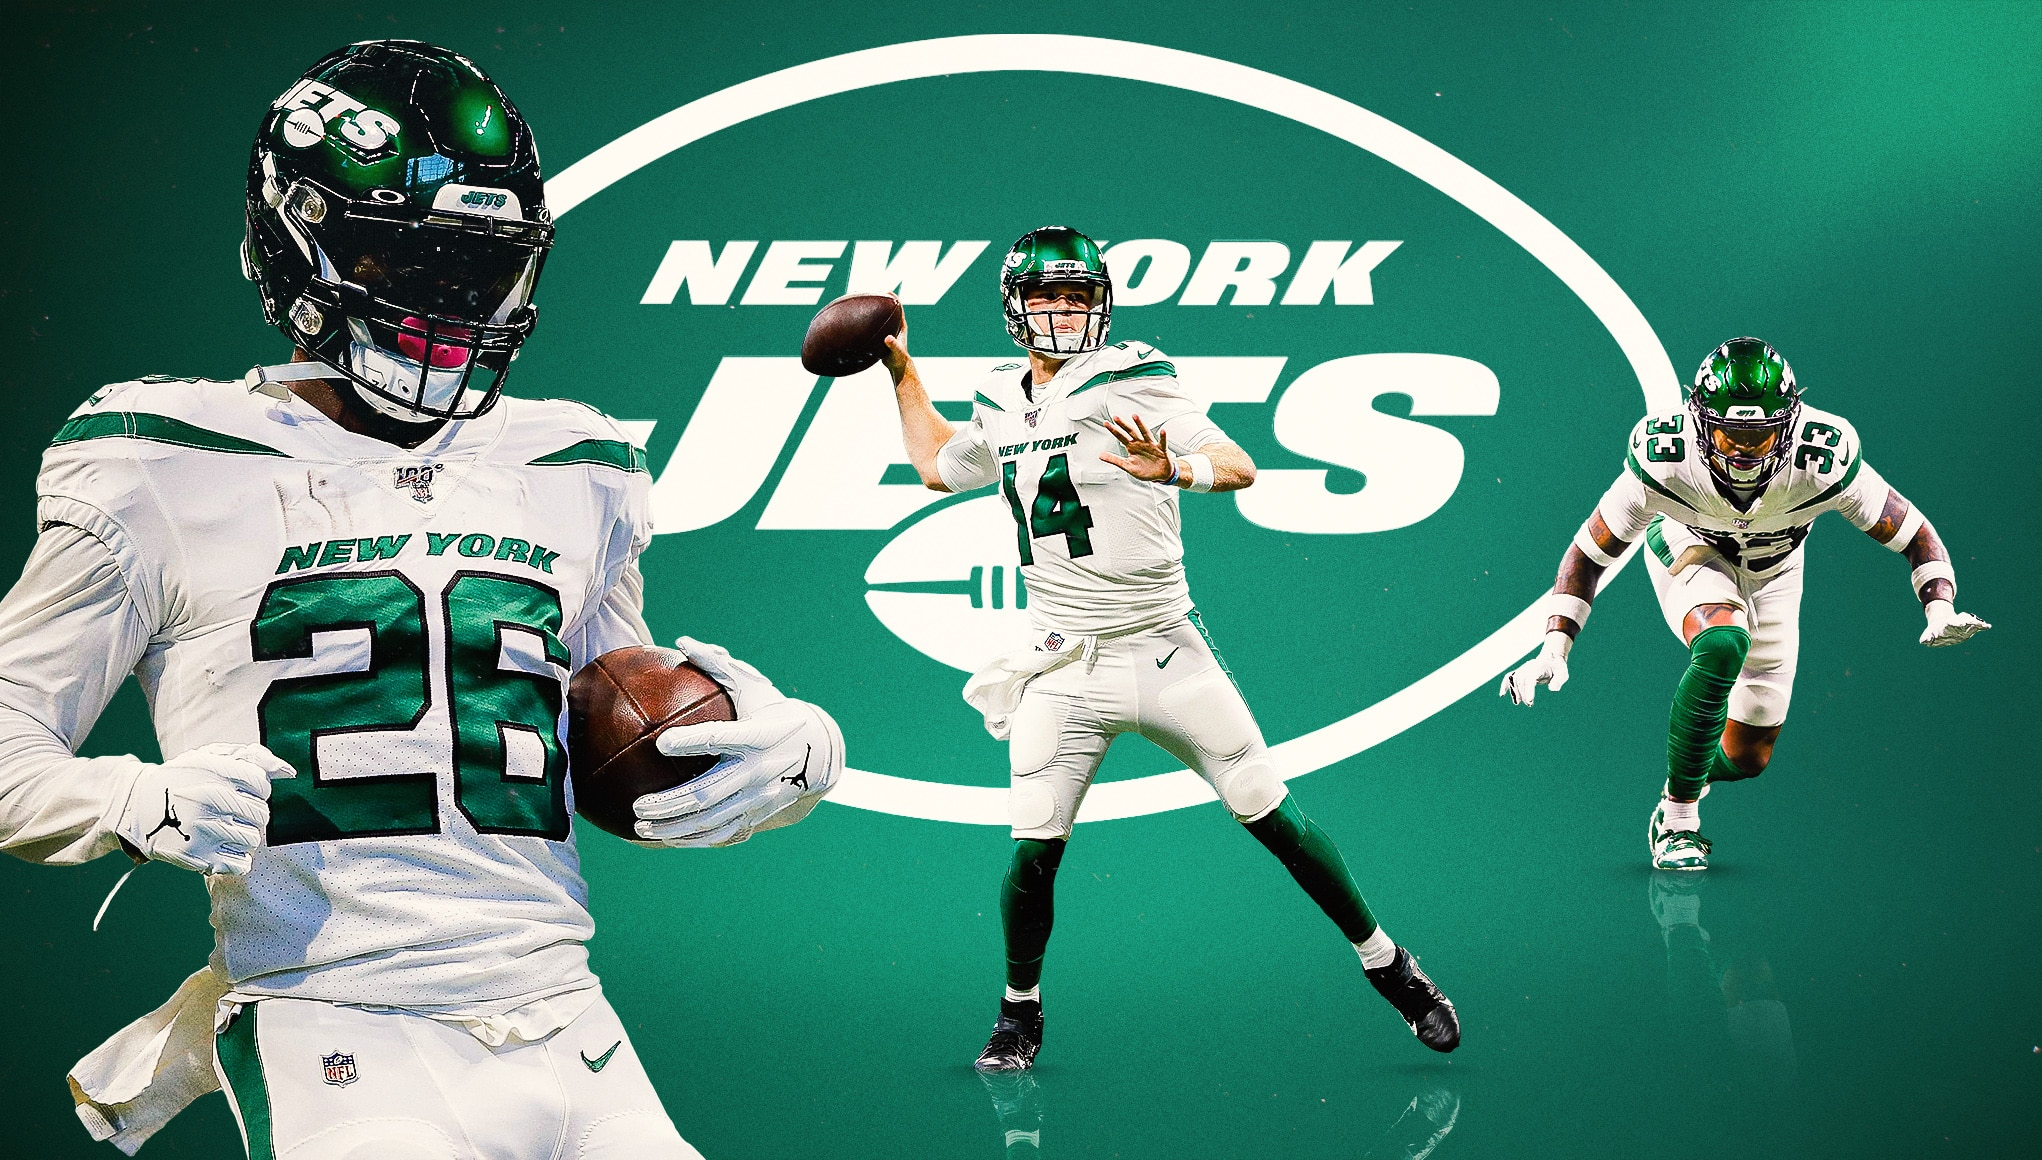 ESNY New York Jets 2019 preview, predictions: The correct vision